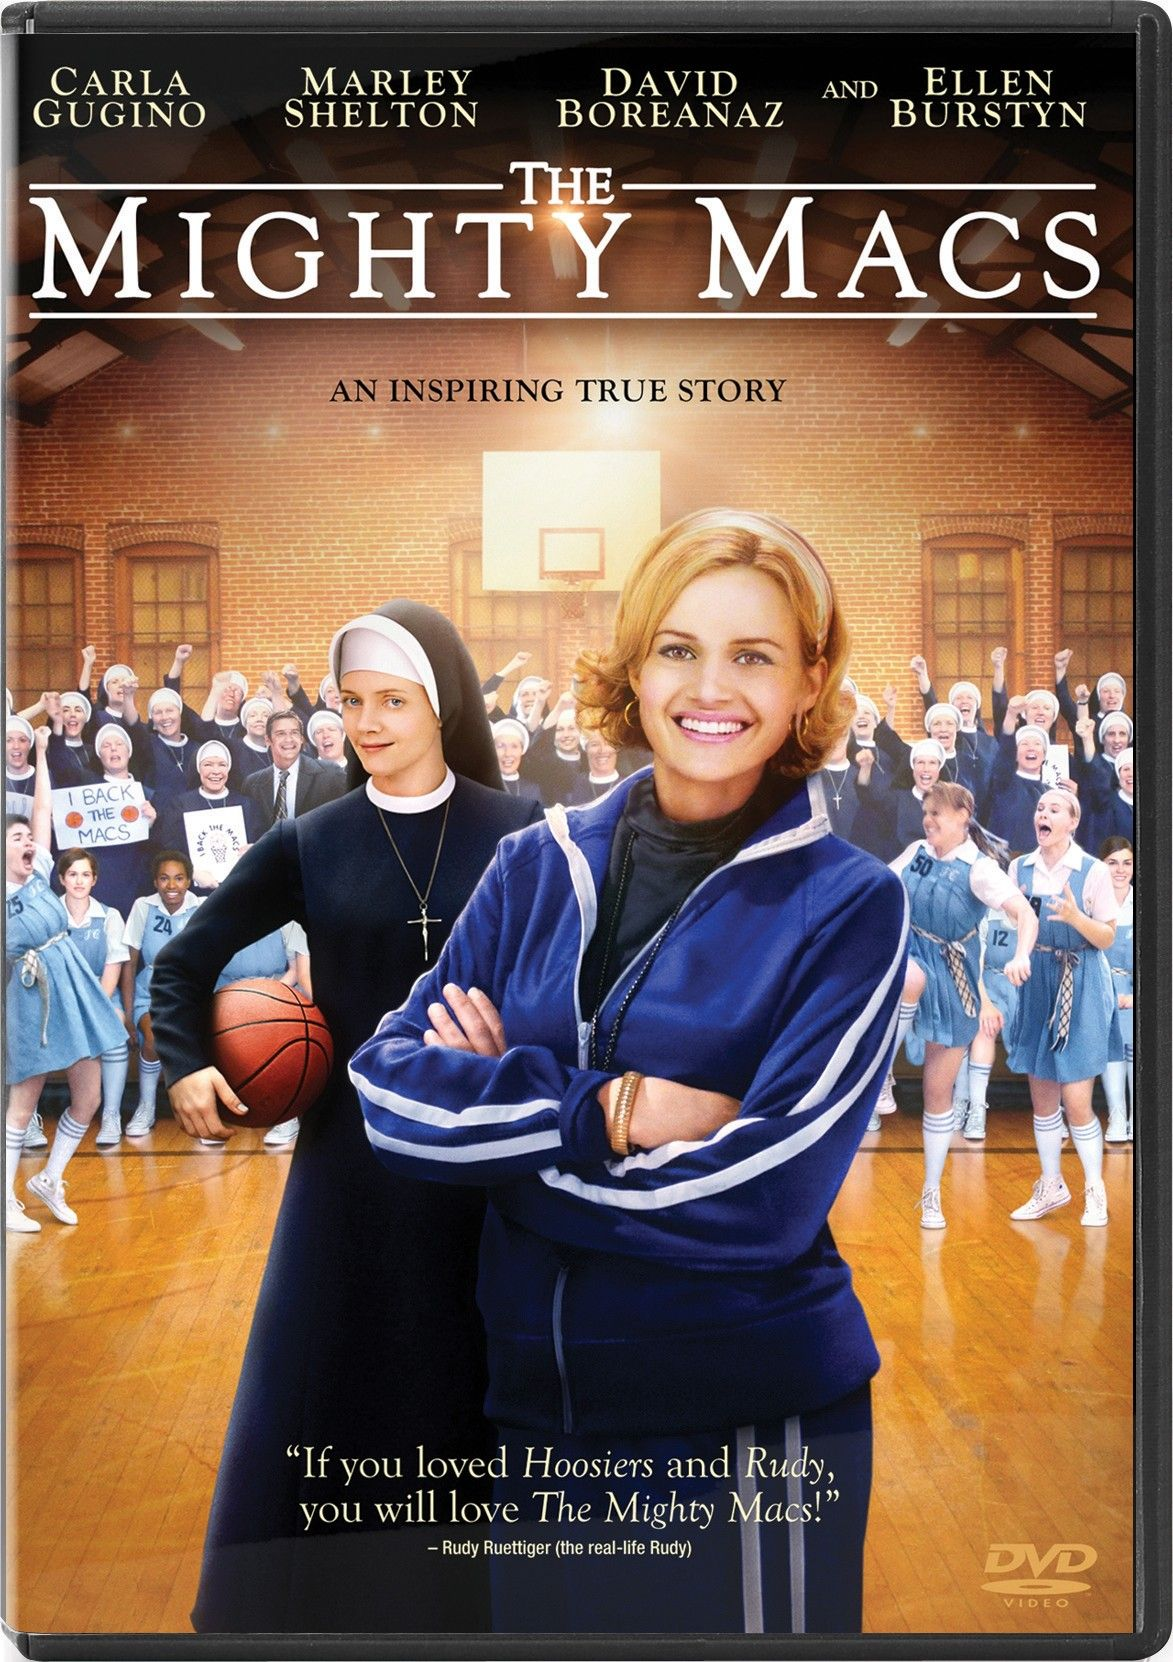 From the inspiring true story comes the tale of one woman who wanted to make a difference and wound up making history! When Coach Cathy Rush (Carla Gugino) arrives at tiny Immaculata College, the women's basketball team has no budget, no uniforms and no gym. Refusing to give up, Cathy finds help from a young nun named Sister Sunday (Marley Shelton). Together, their relentless drive reignites the team's spirit and the Mighty Macs begin conquering bigger and better-funded schools.